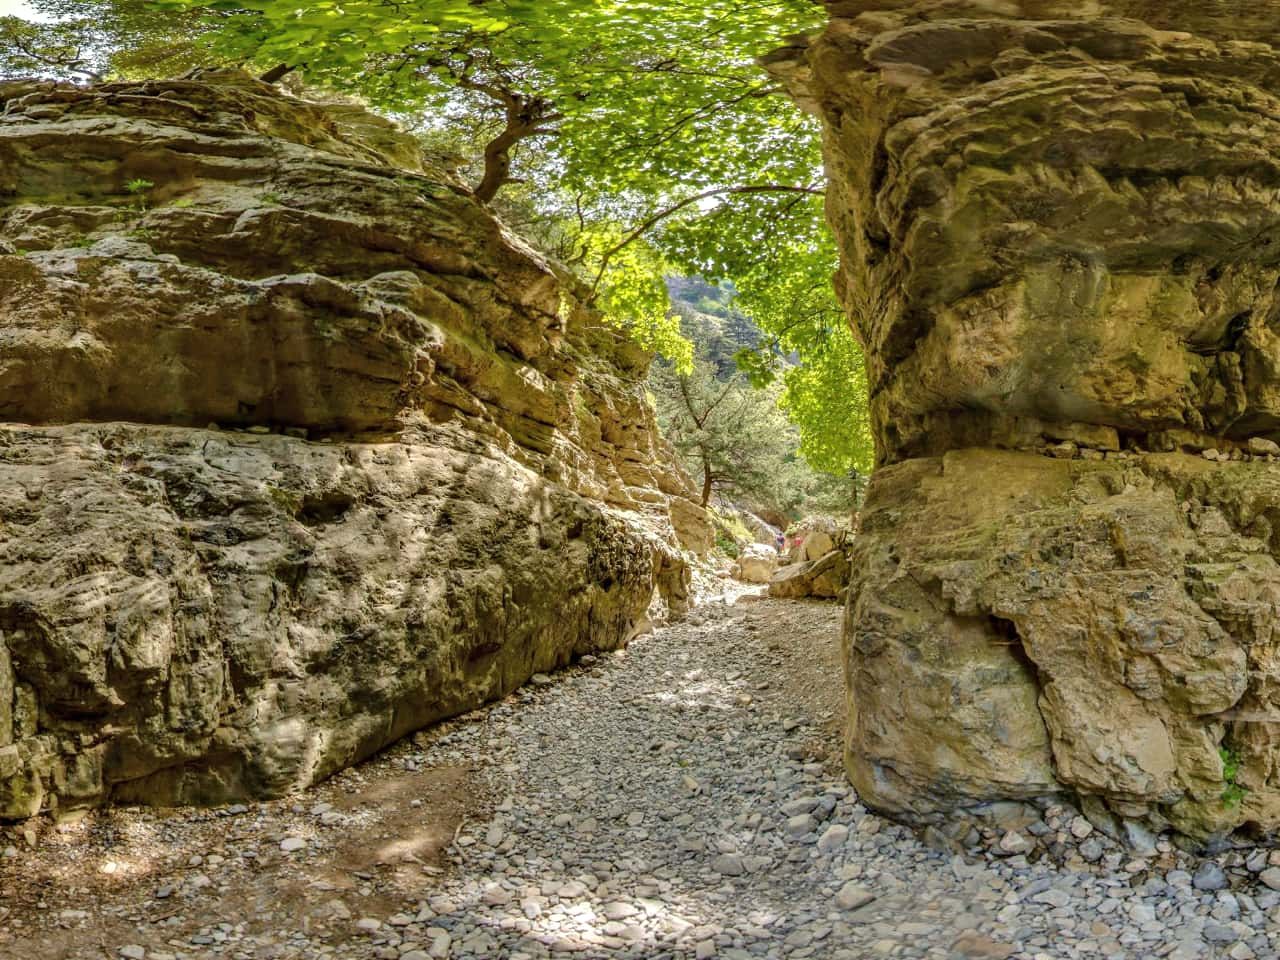 The Far Out South Exploring Amazing South Chania, activities south chania crete, imbros gorge hiking, loutro village, sfakia village, best activity south crete, activities chania crete, things to do chania crete, visit south chania crete activity